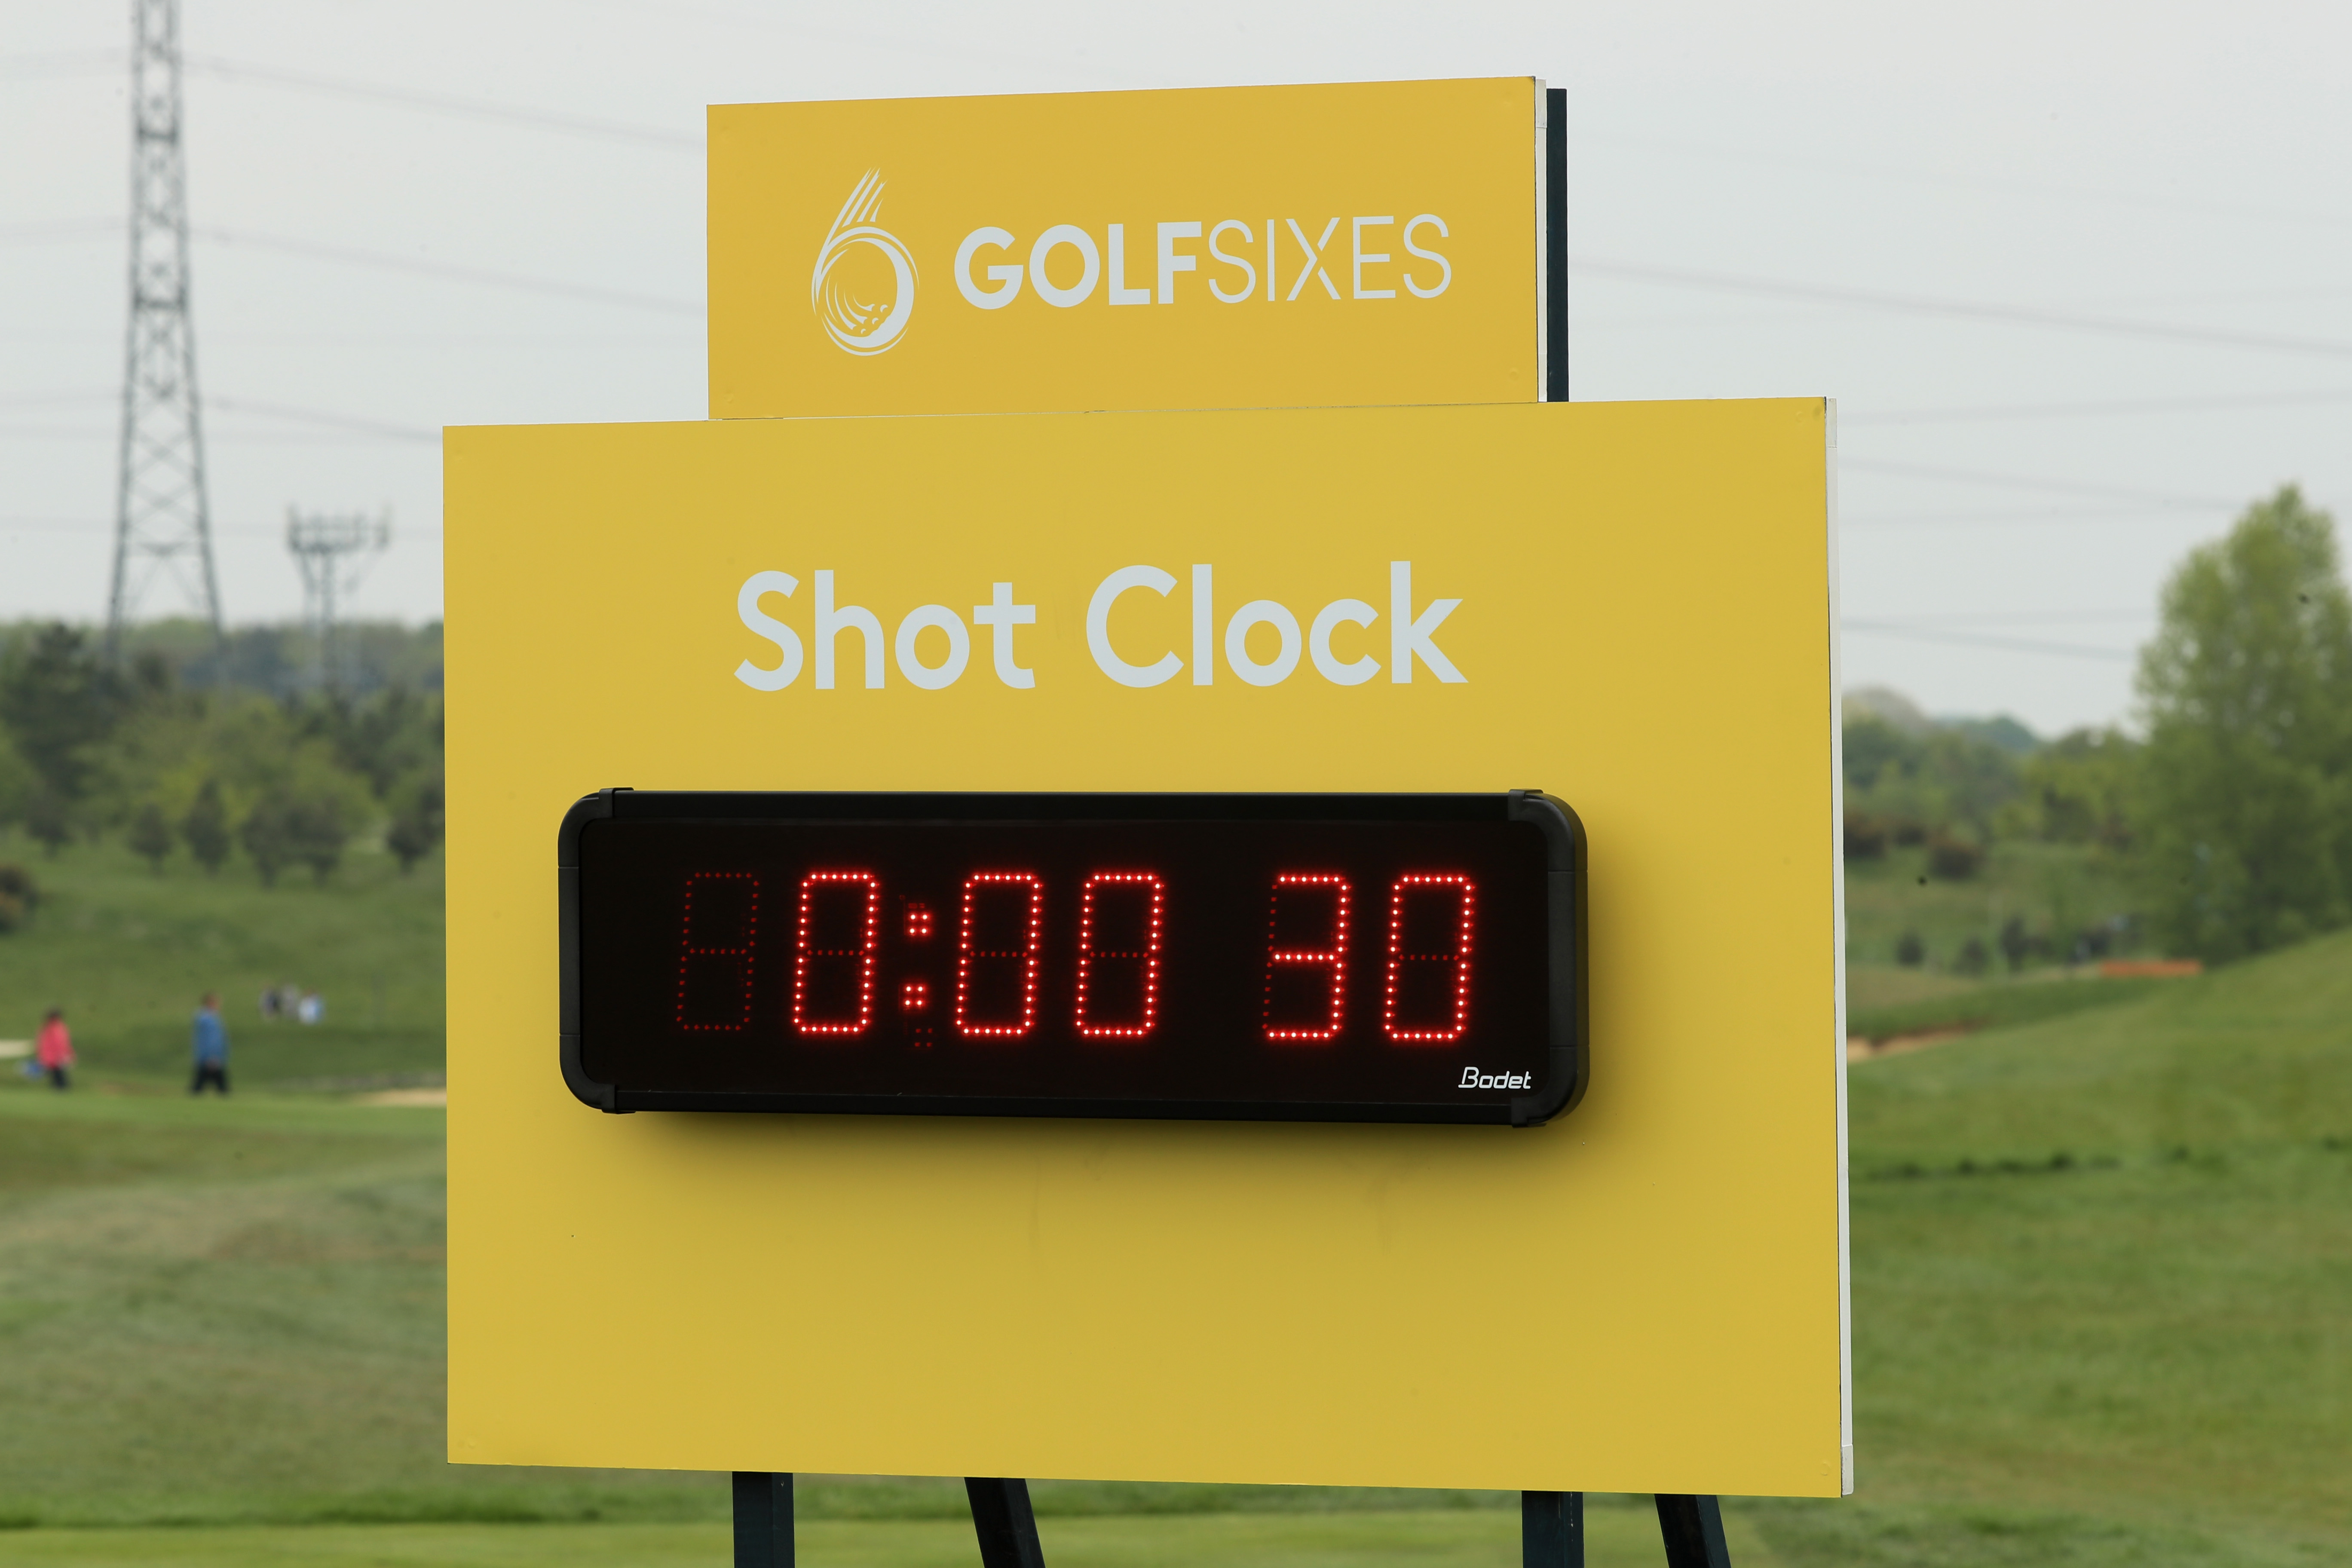 ST ALBANS, ENGLAND - MAY 06: General View of the shot clock on the 4th hole during day one of GolfSixes at The Centurion Club on May 6, 2017 in St Albans, England. (Photo by Andrew Redington/Getty Images)